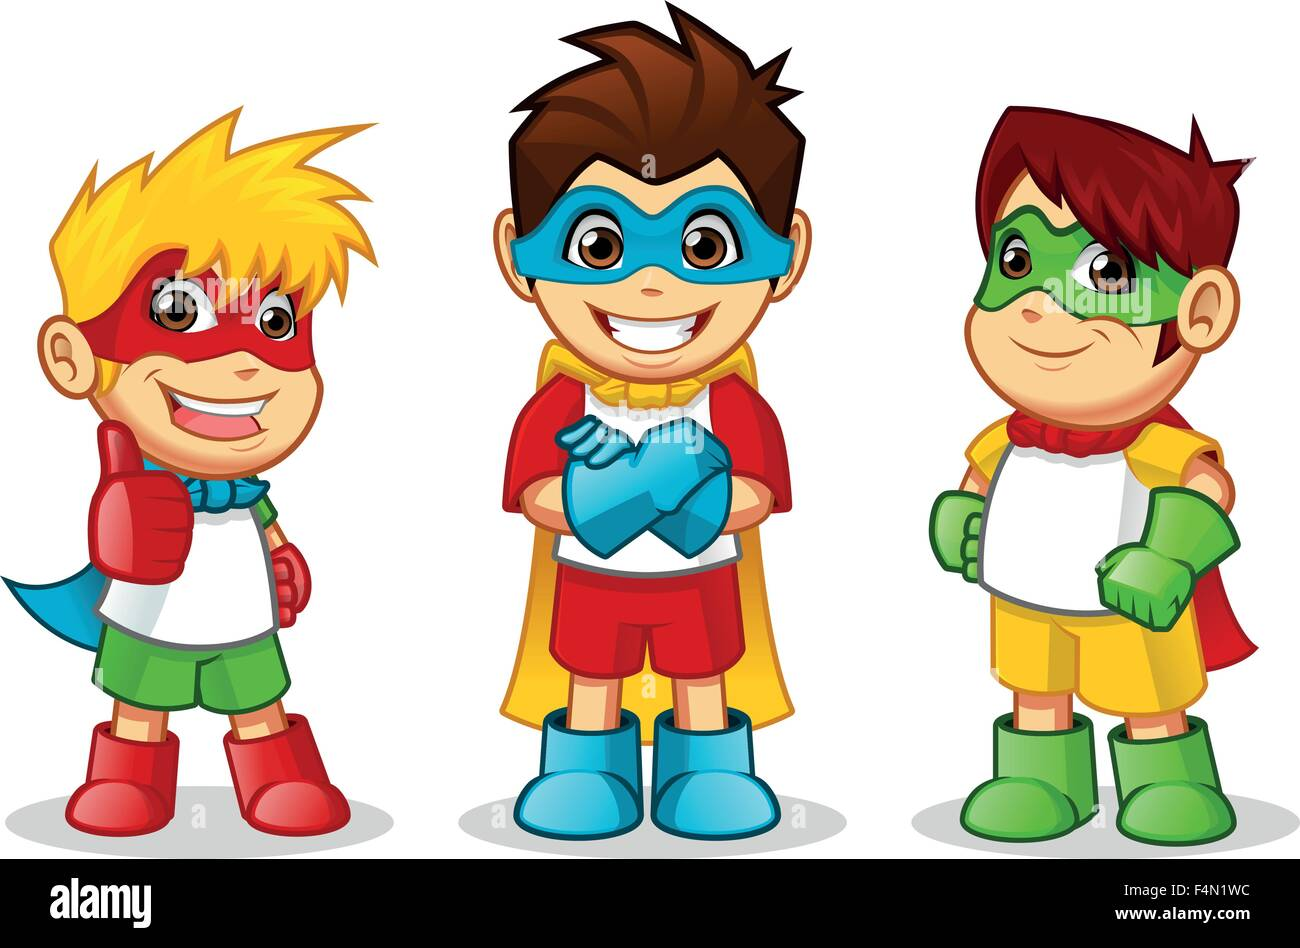 High Quality Kid Super Heroes Cartoon Character Vector Illustration - Stock Image